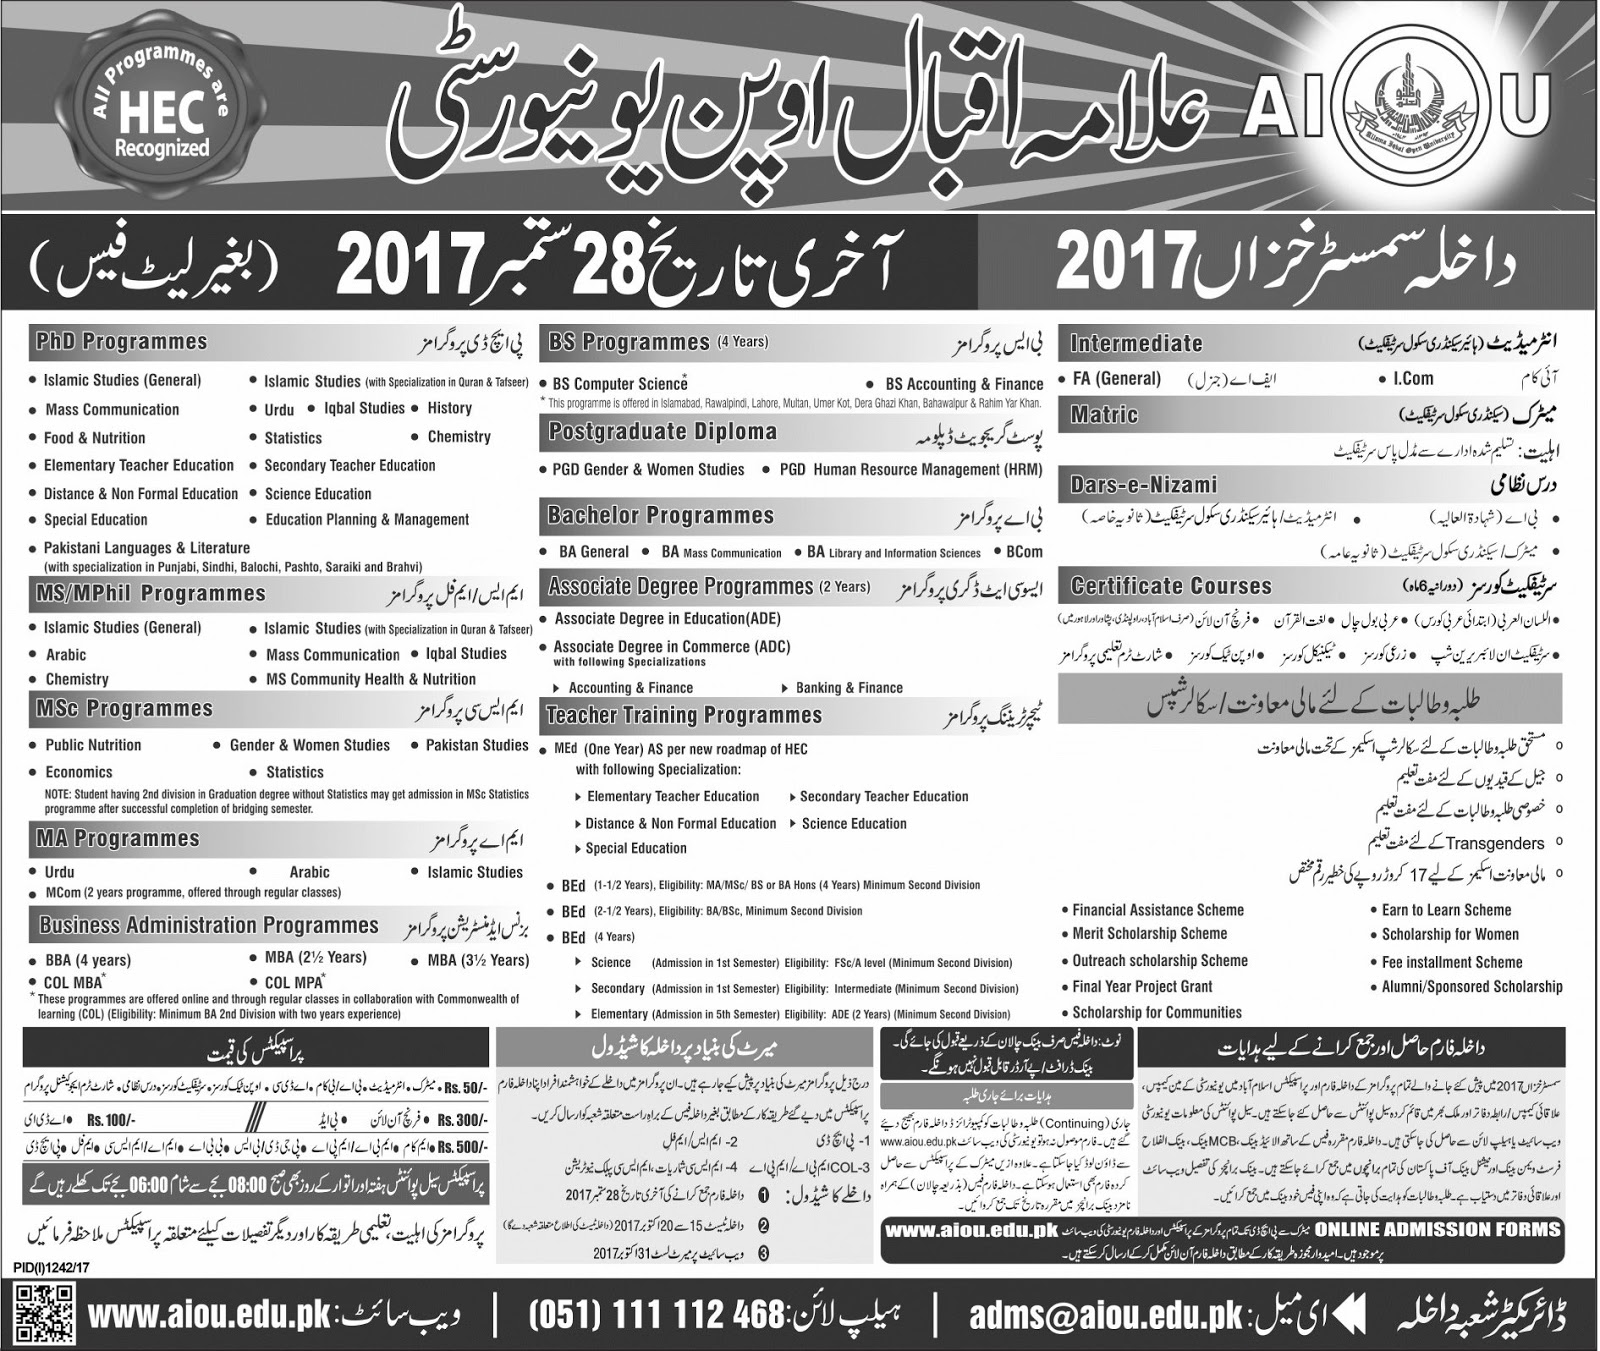 Admissions Open in Allama Iqbal Open University - 2017